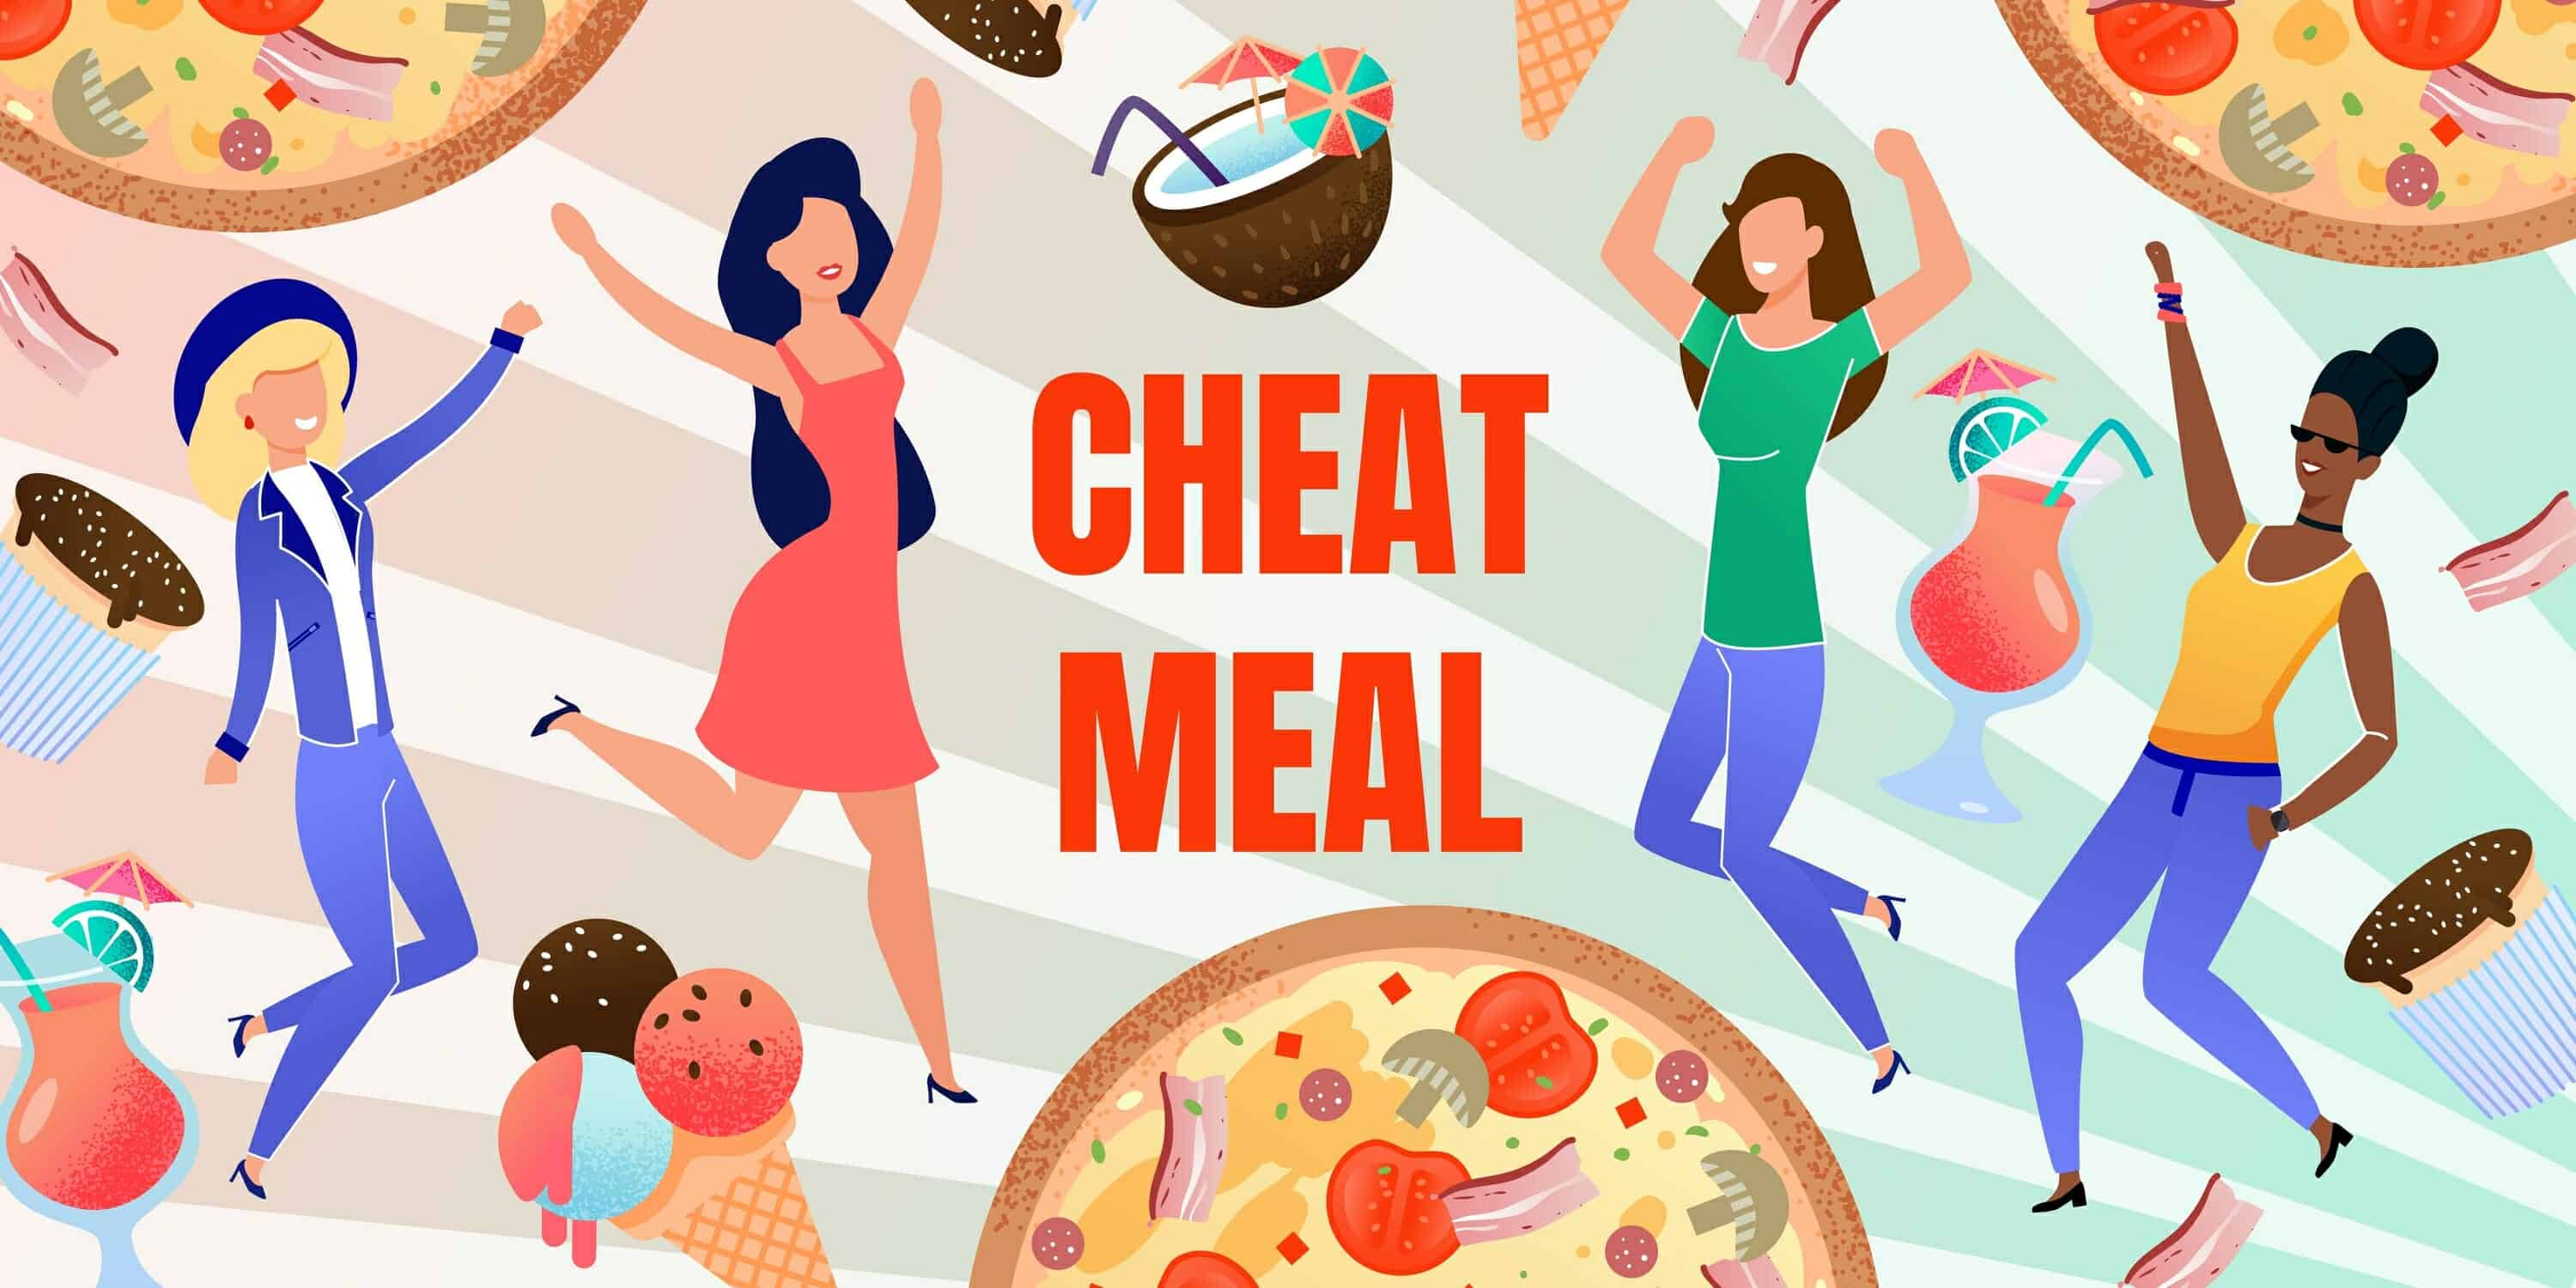 How Often Should You Have A Cheat Meal?